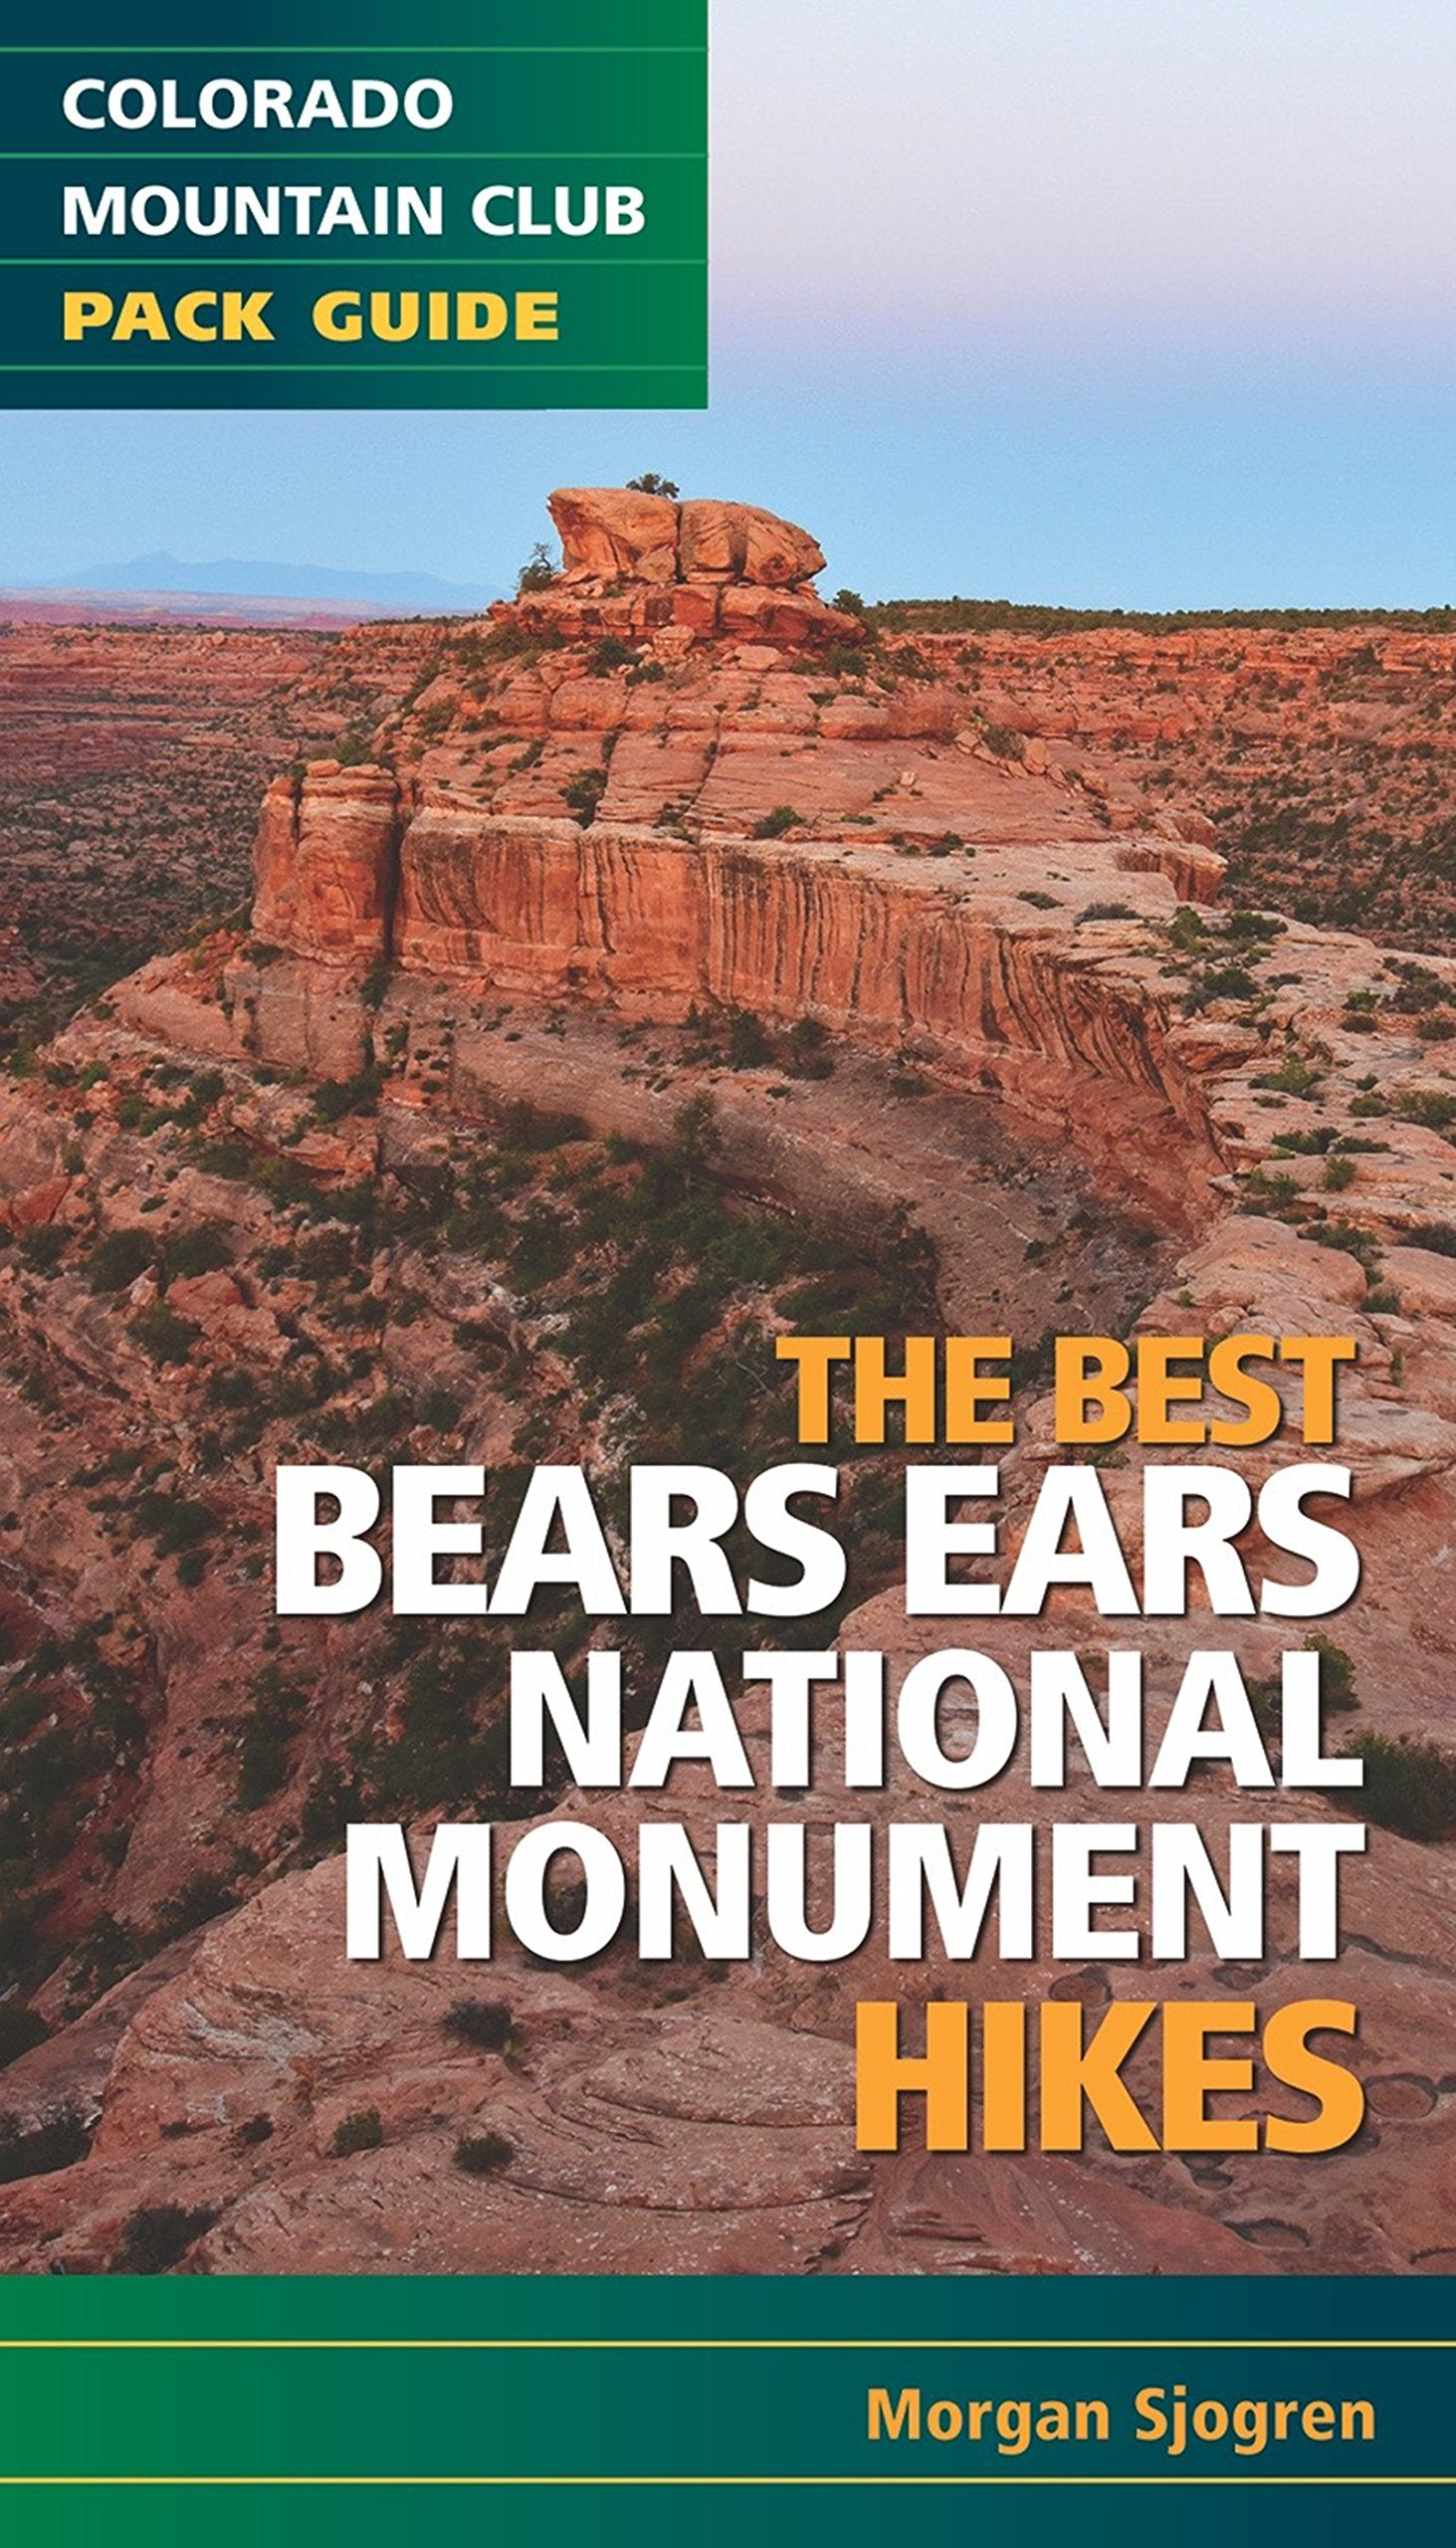 The Best Bears Ears National Monument Hikes (Colorado Mountain Club Pack Guide)